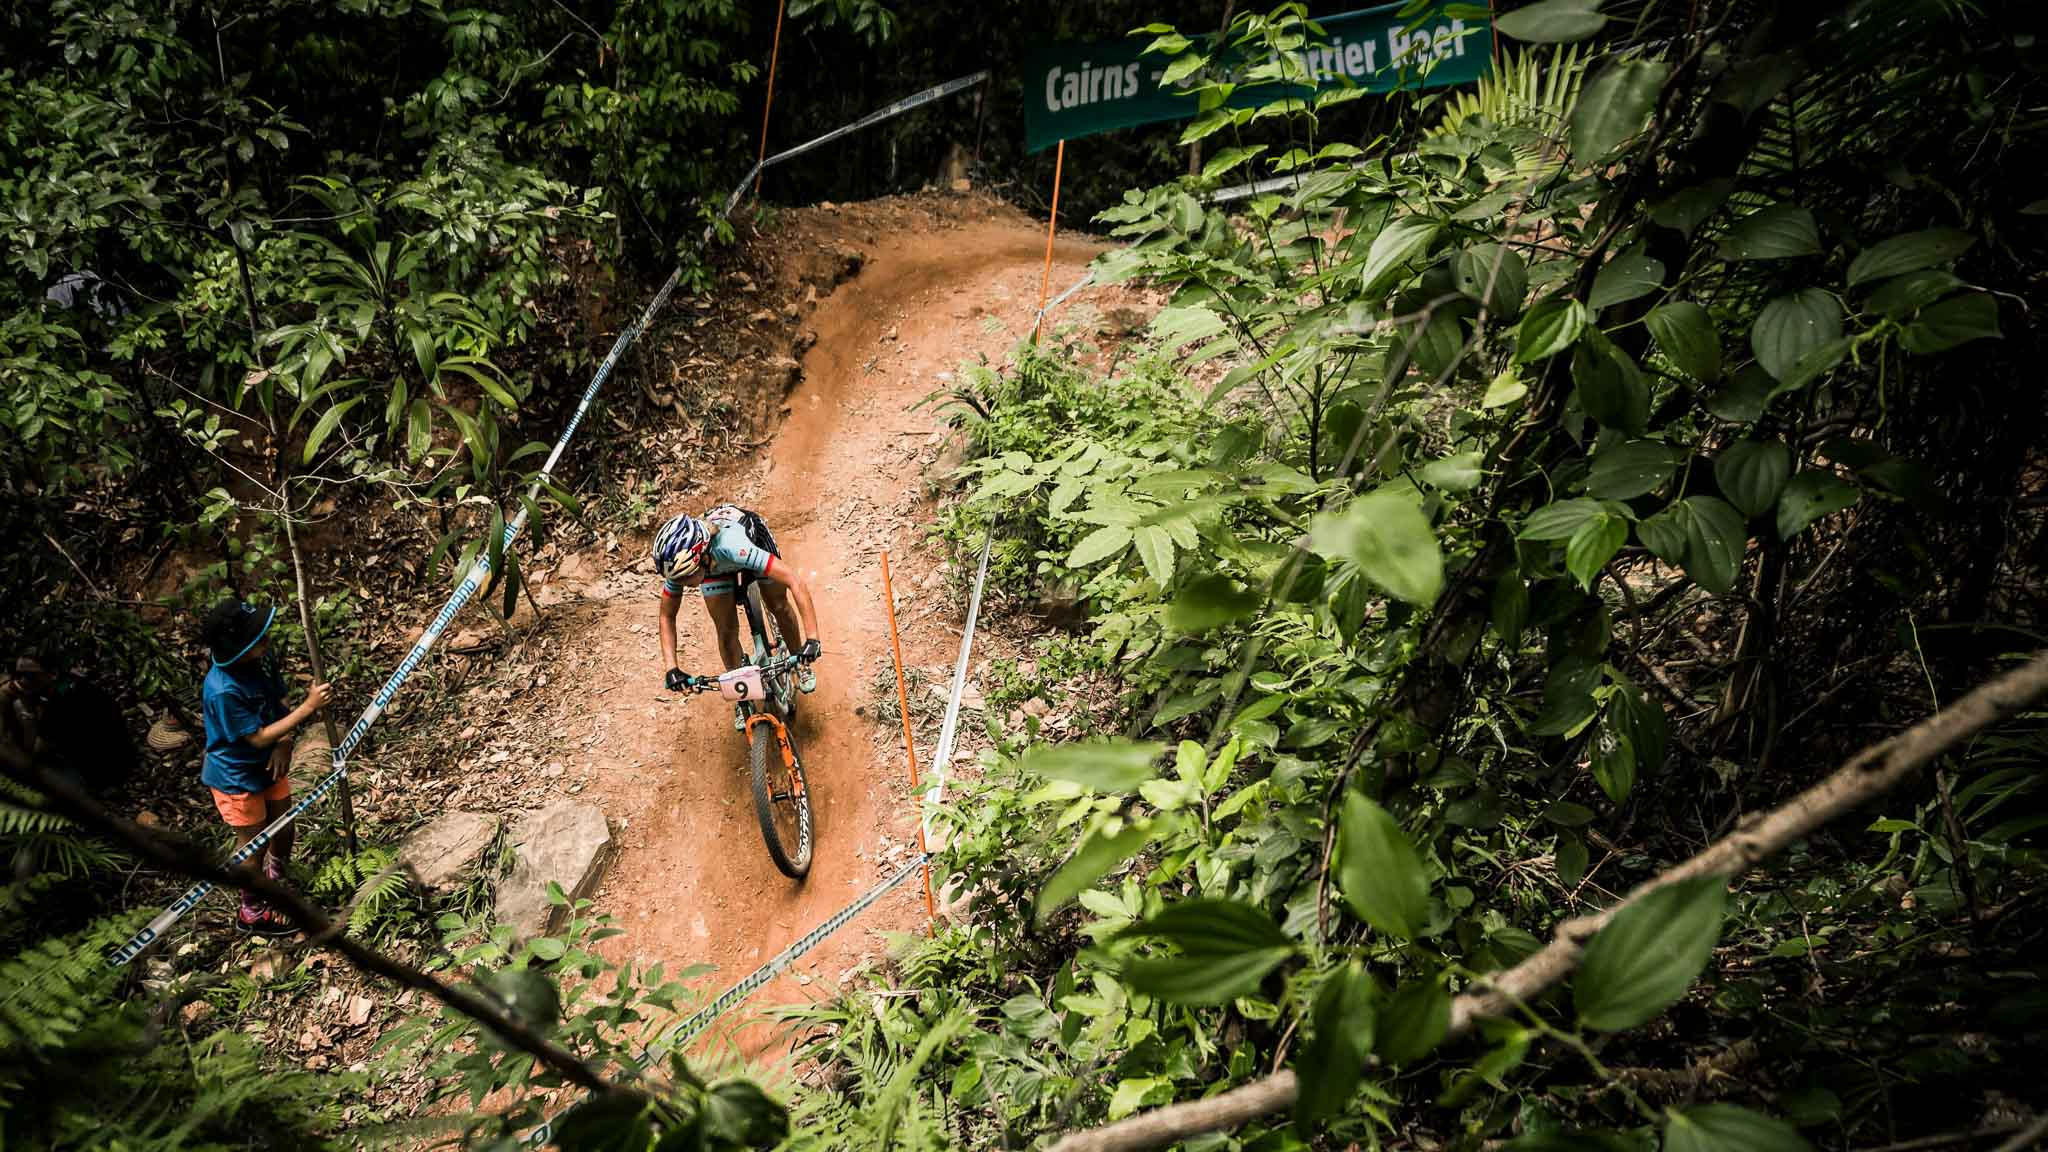 Emily Batty performs at the UCI XCO World Tour in Cairns on April 24th 2016 // Bartek Wolinski/Red Bull Content Pool // P-20160424-00156 // Usage for editorial use only // Please go to www.redbullcontentpool.com for further information. //